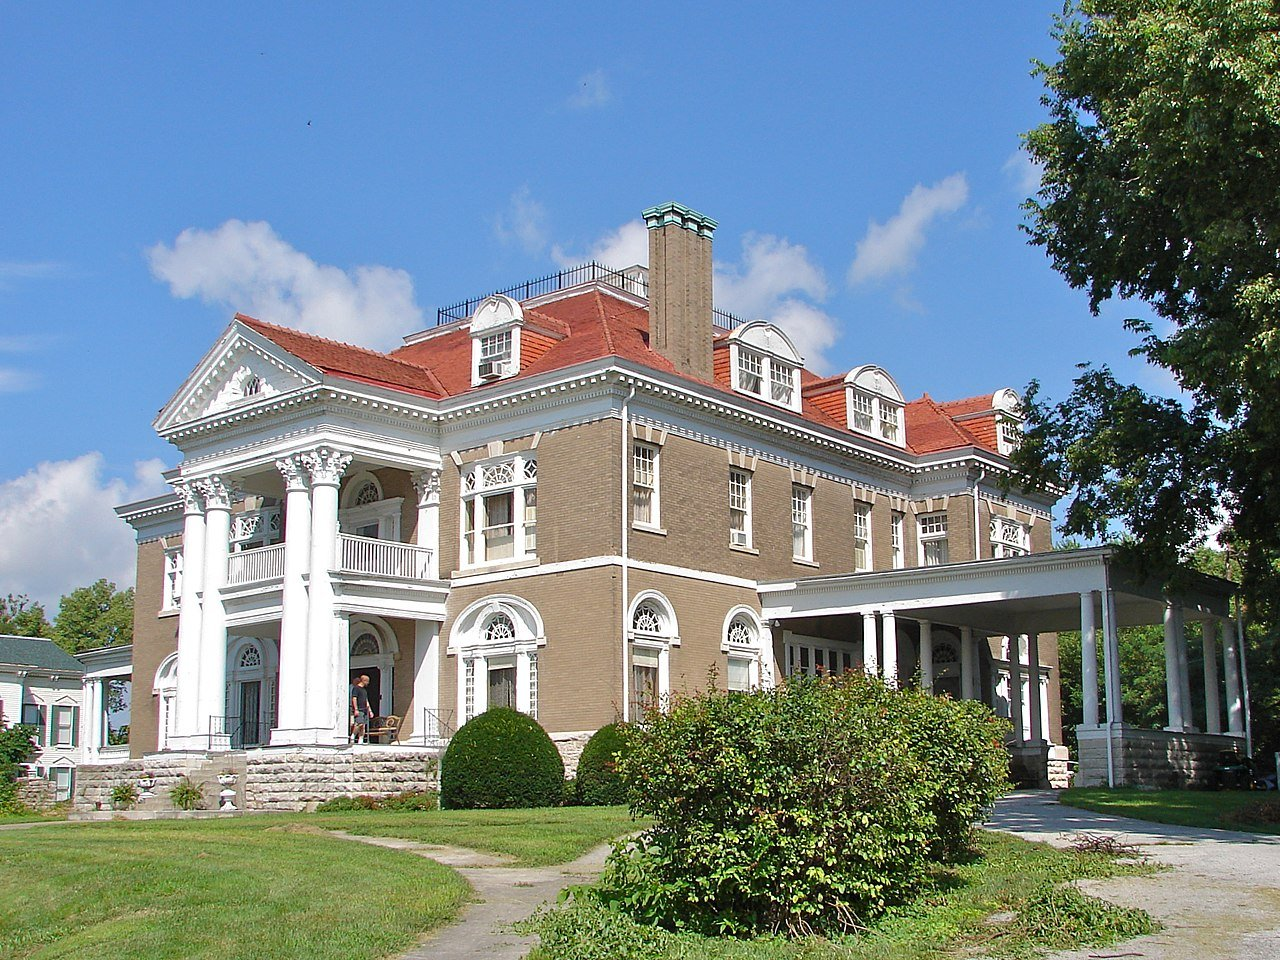 Rockcliffe Mansion was built in 1900.